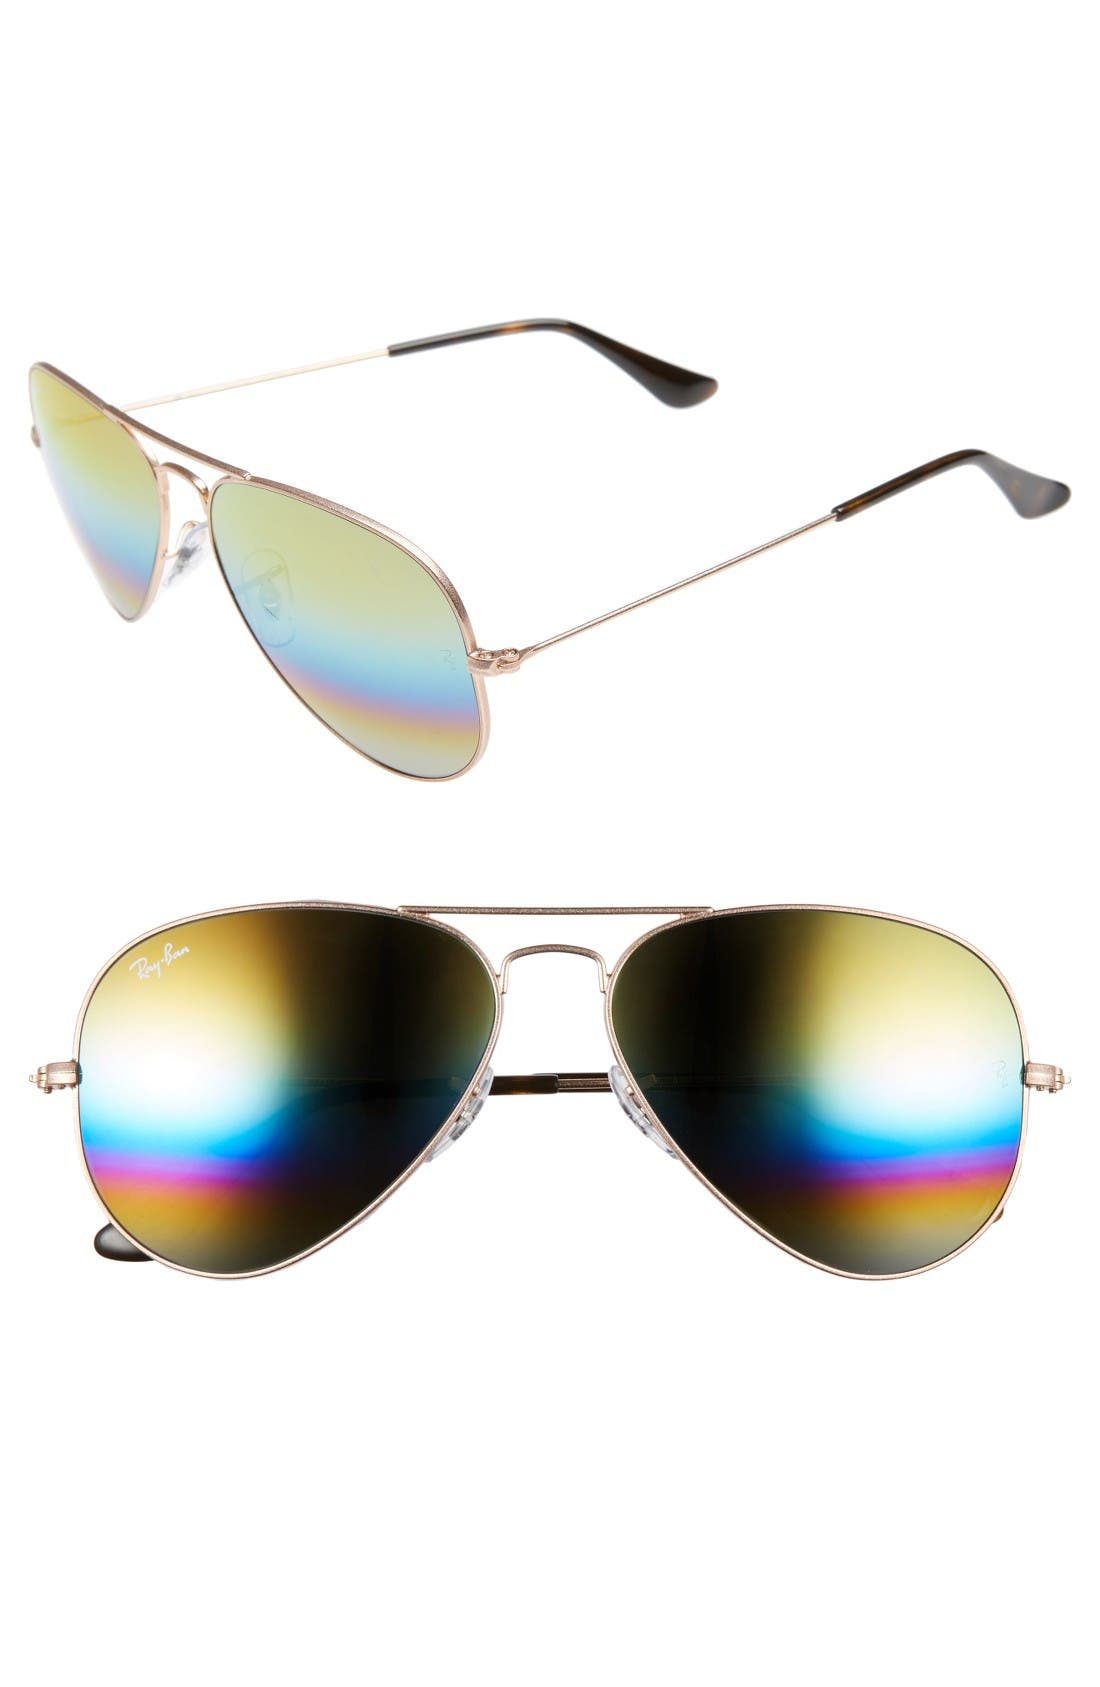 58mm Aviator Sunglasses,                             Main thumbnail 1, color,                             Metallic Lght Bronze/ Mirror